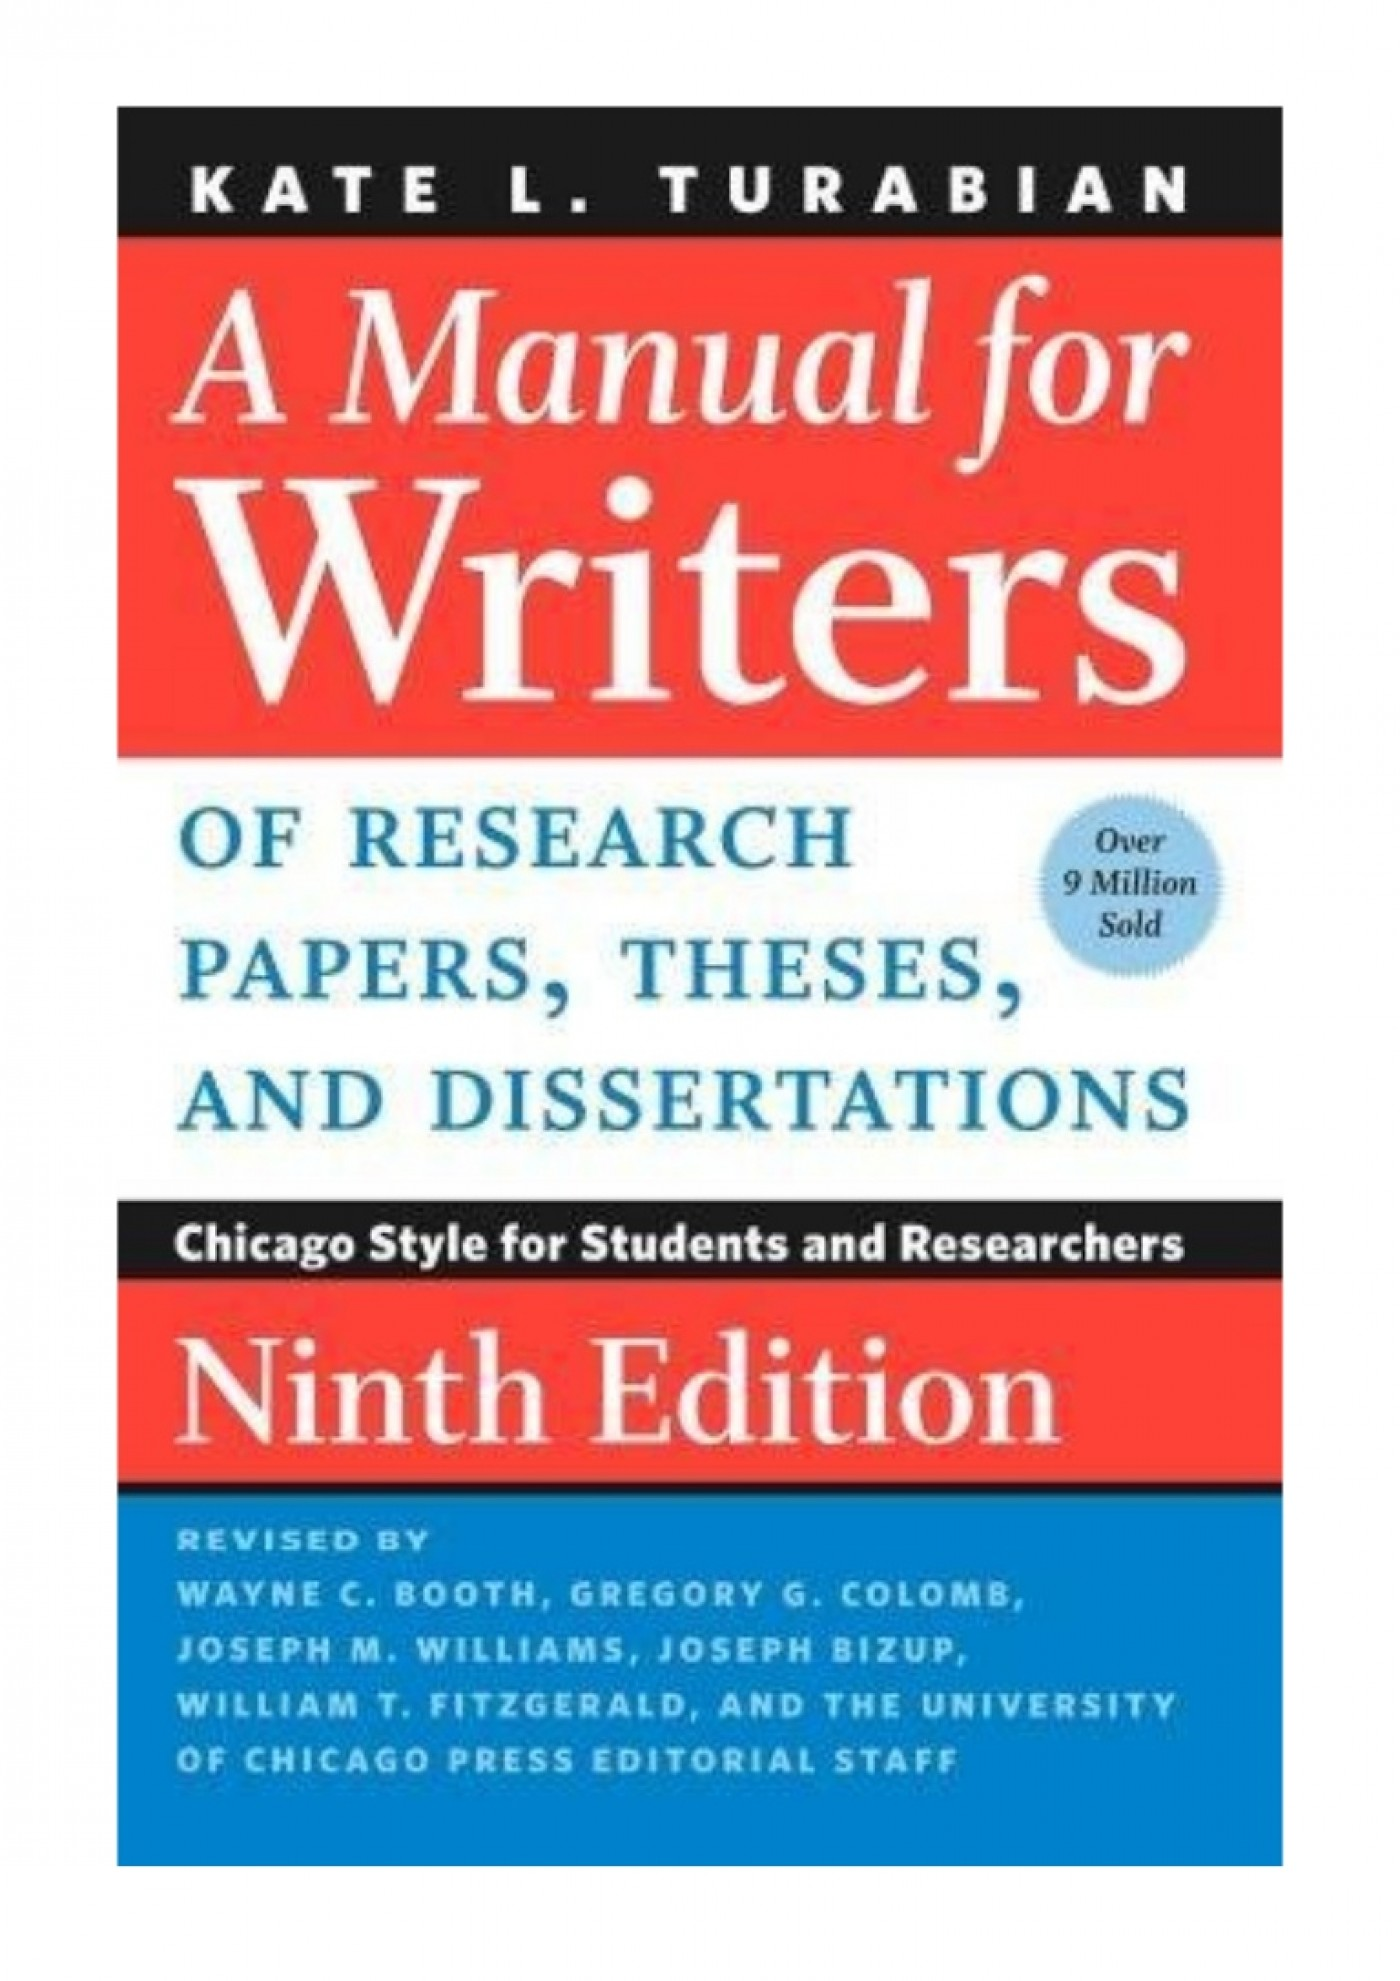 008 Research Paper 022643057x Amanualforwritersofresearchpapersthesesanddissertationsnintheditionbykatel Thumbnail Manual For Writers Of Papers Theses And Amazing A Dissertations Turabian Pdf 1400